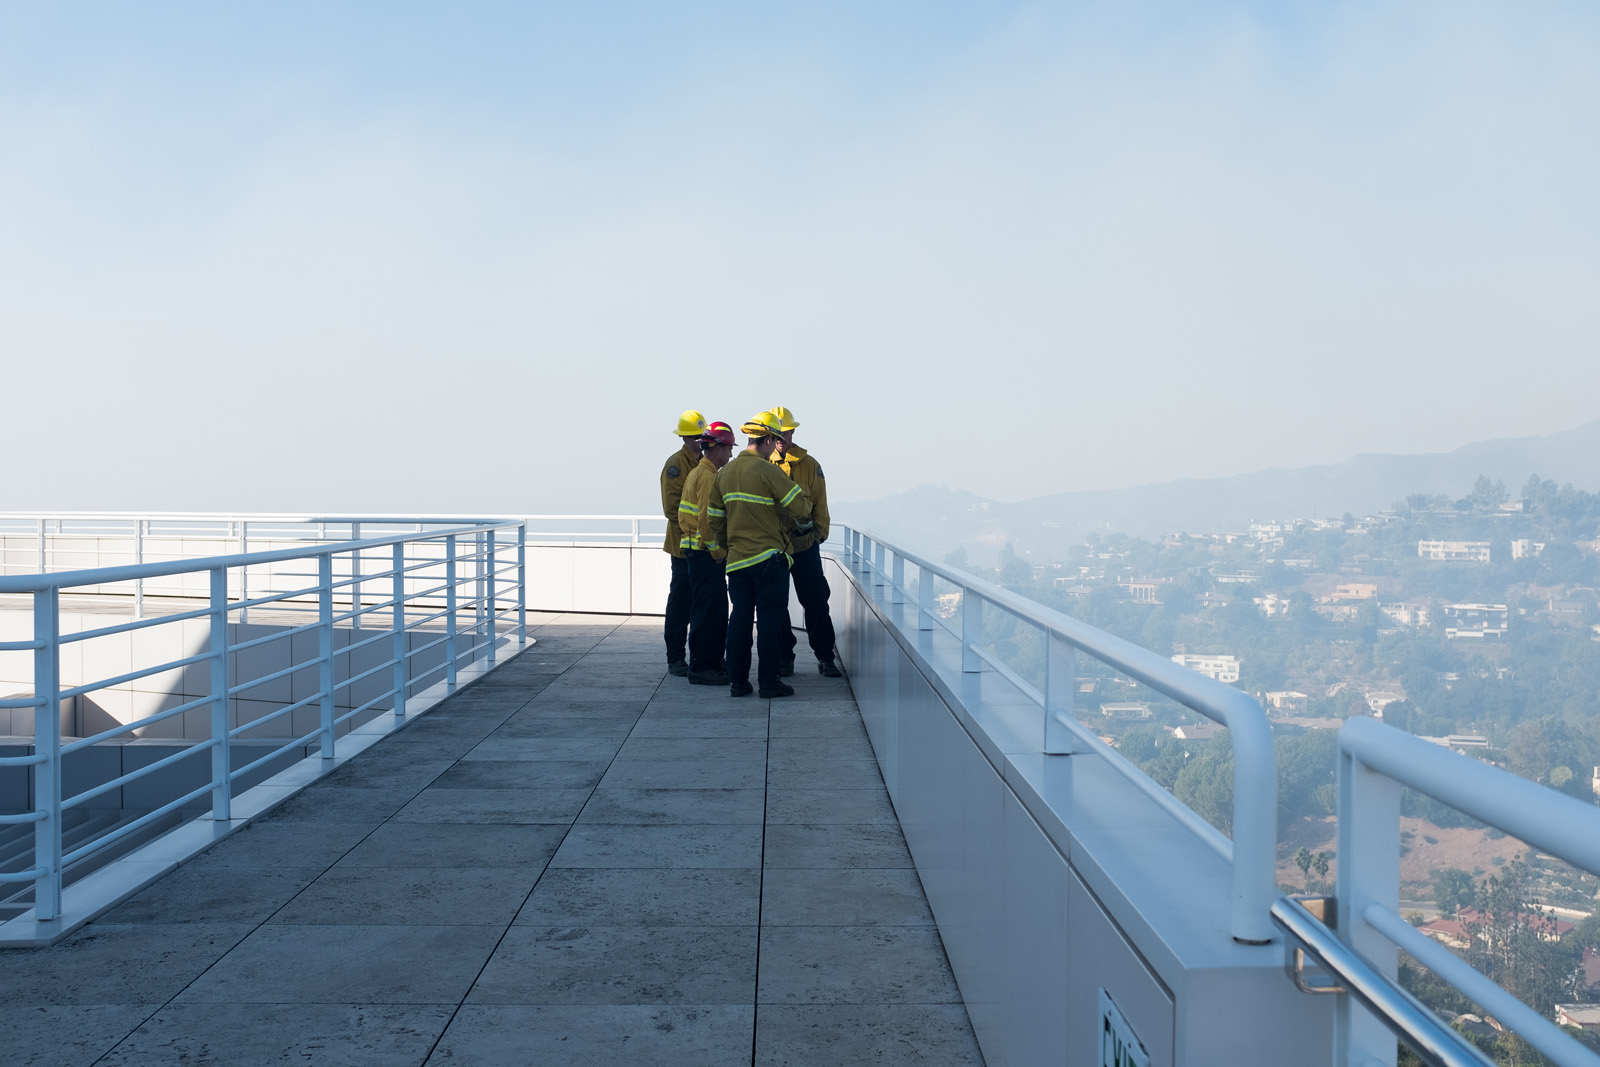 Firefighters on the Getty Center Restaurant terrace at midday Monday. The terrace has views to the west (as here) and north.